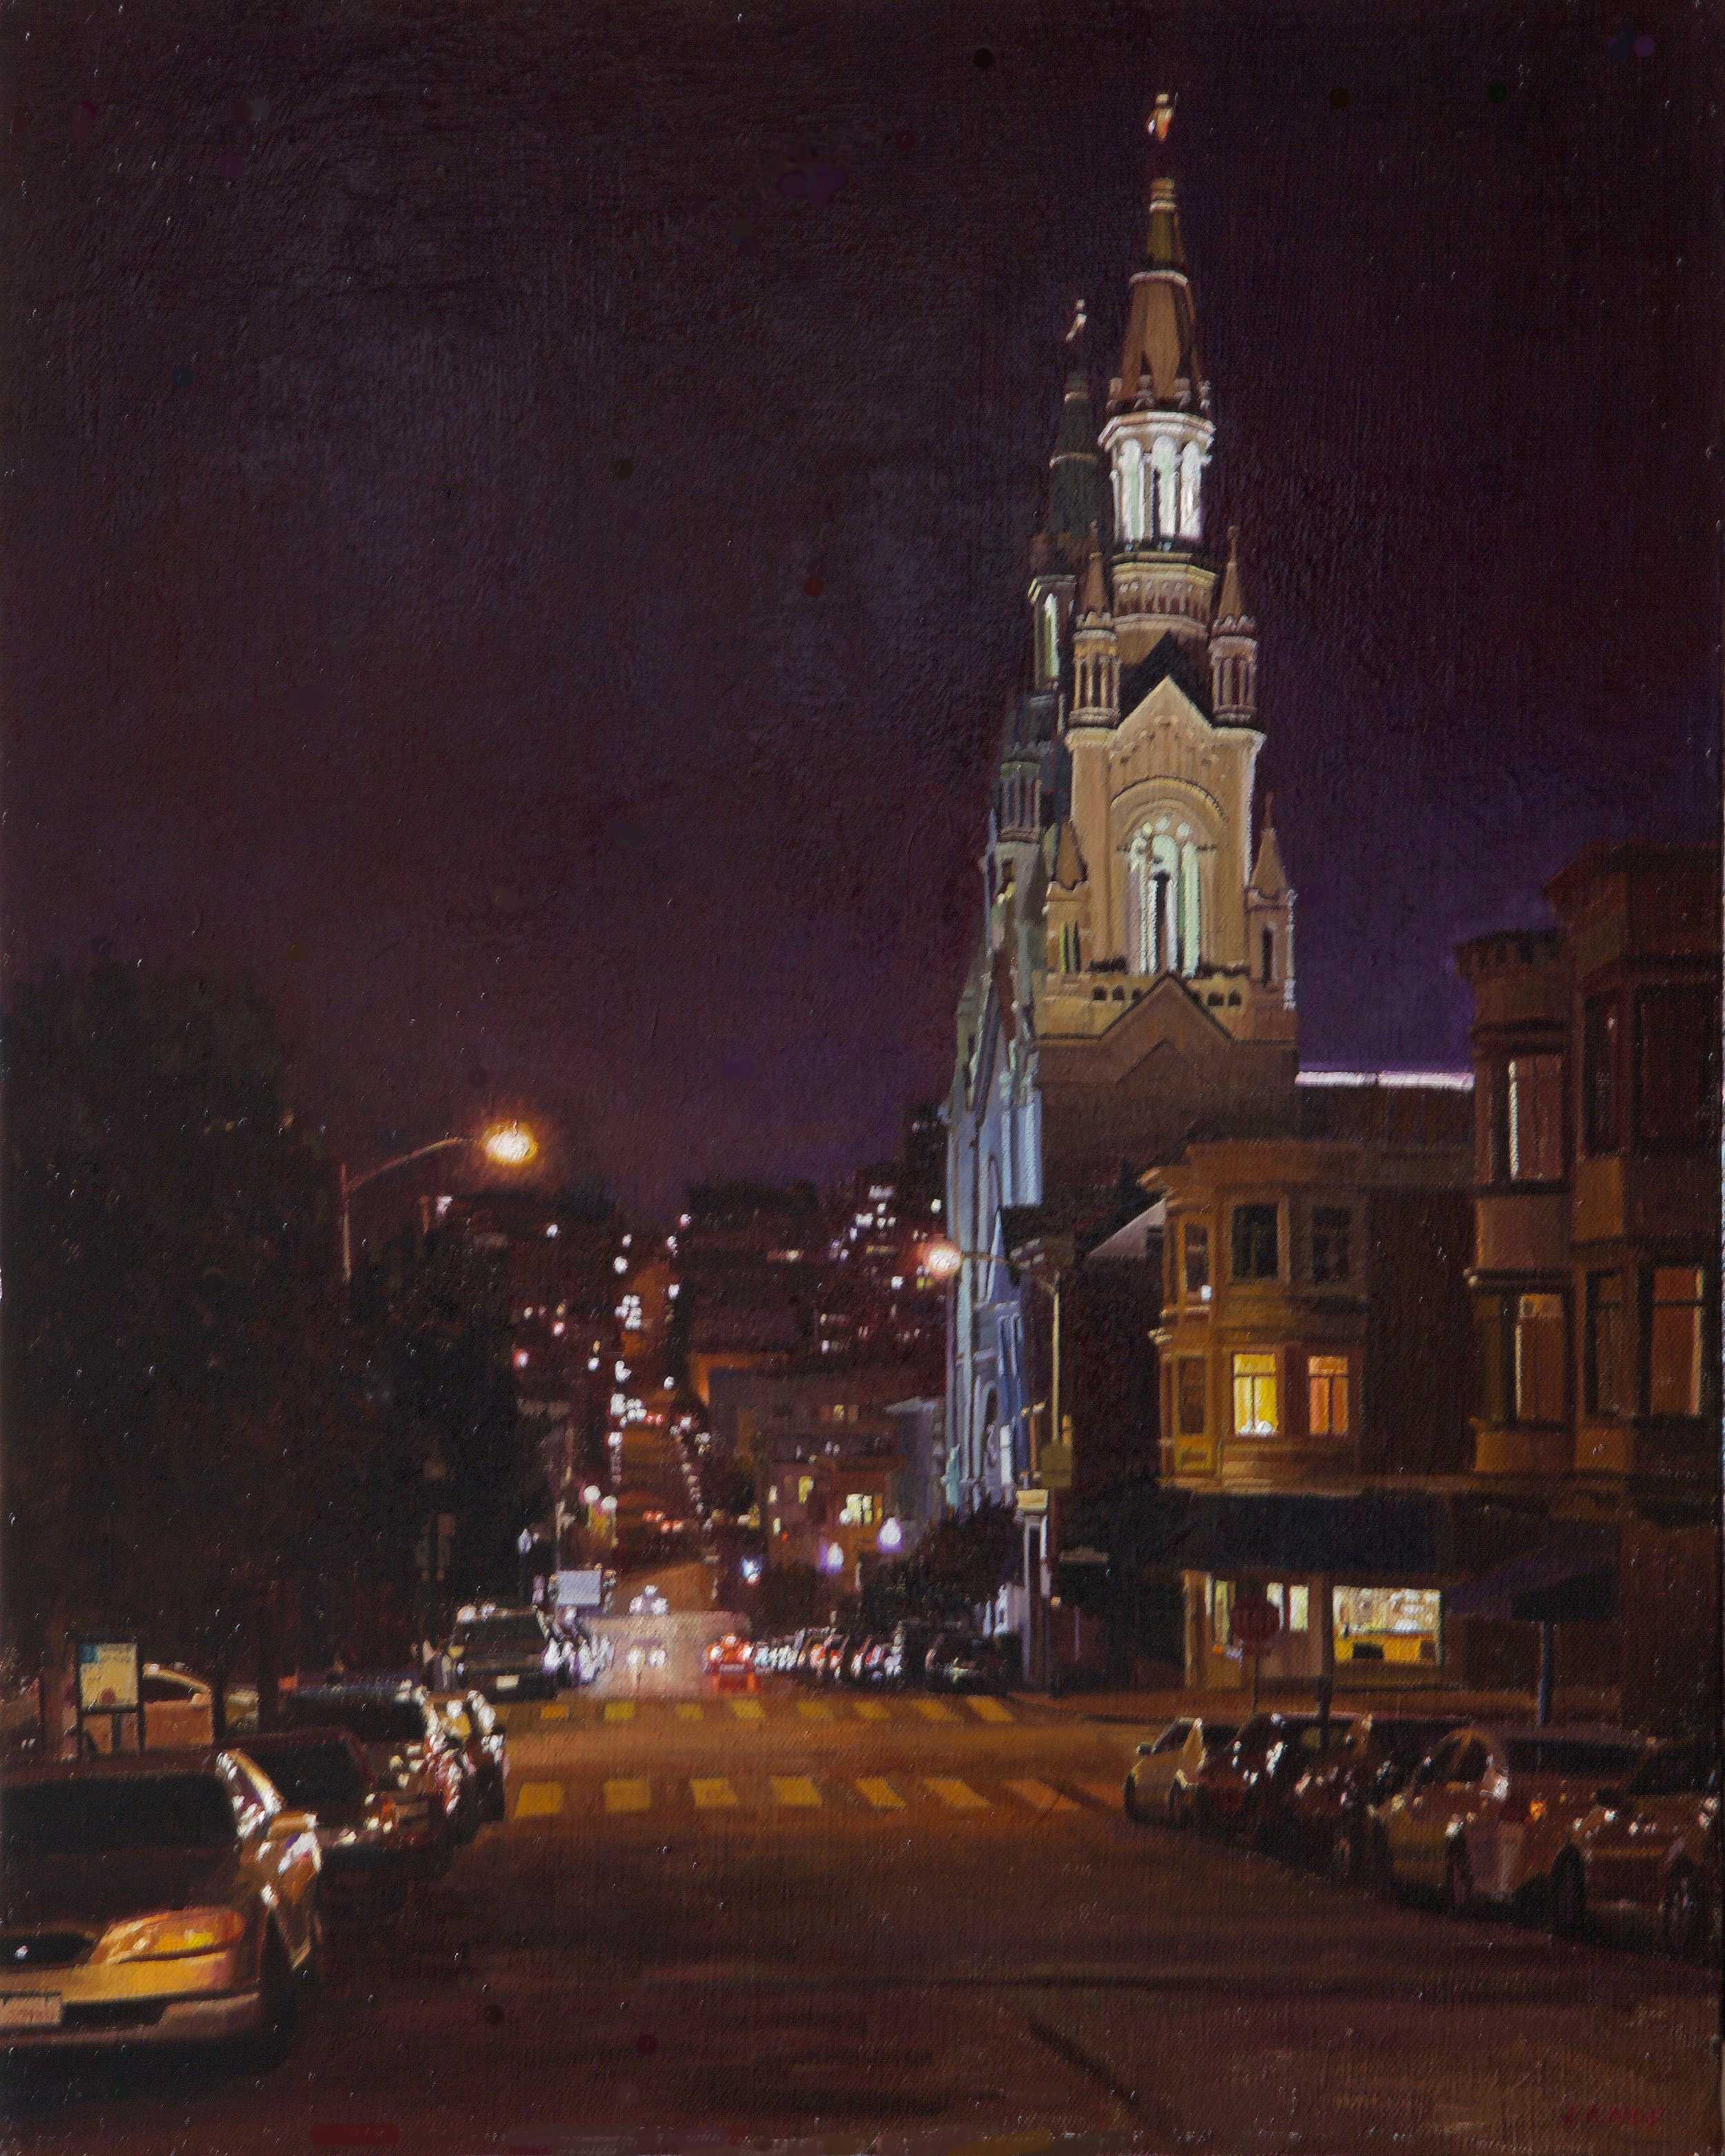 St. Peters and Paul's Church at Night